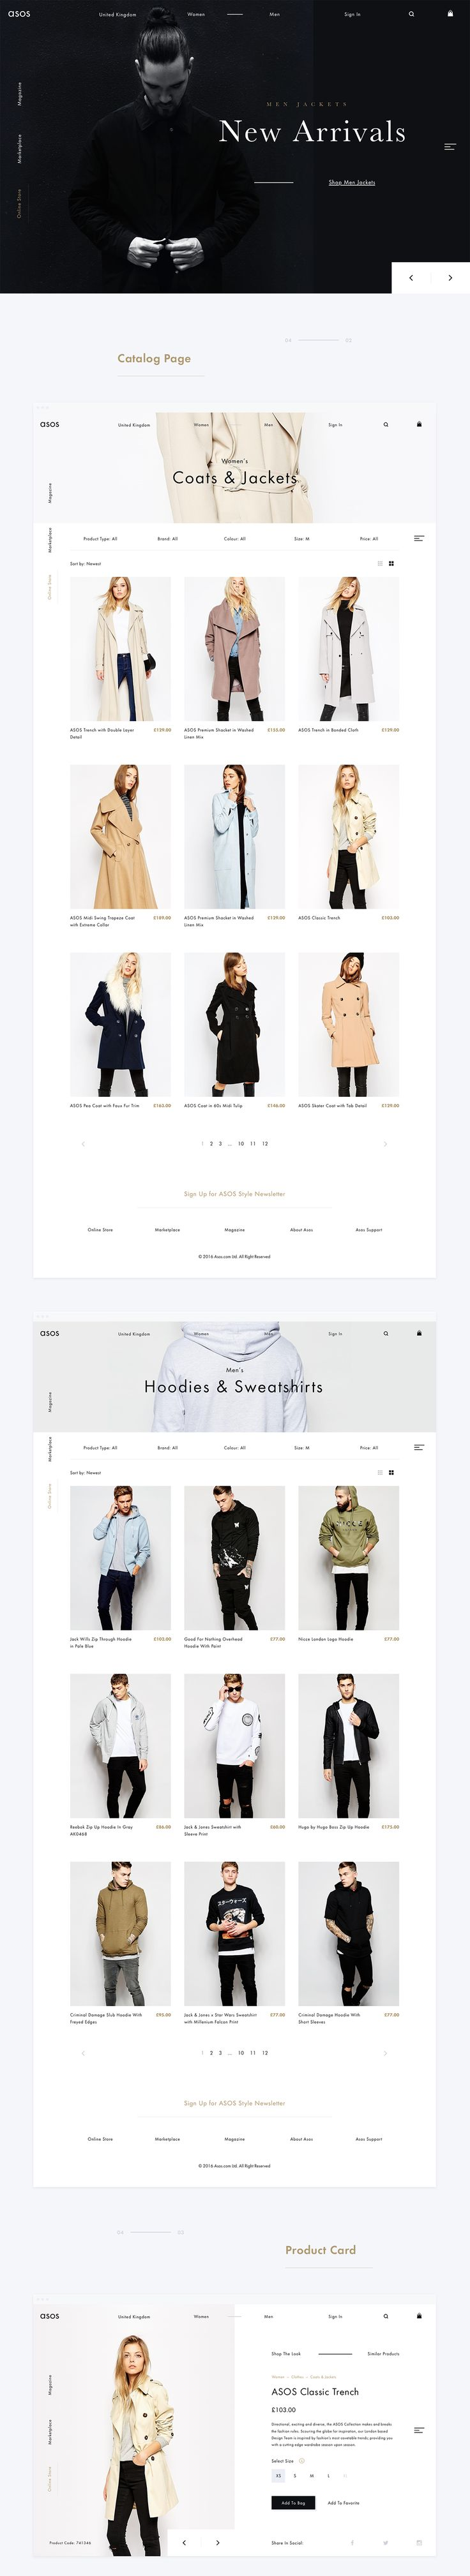 Asos. Redesign & Rethinking Concept on Web Design Served